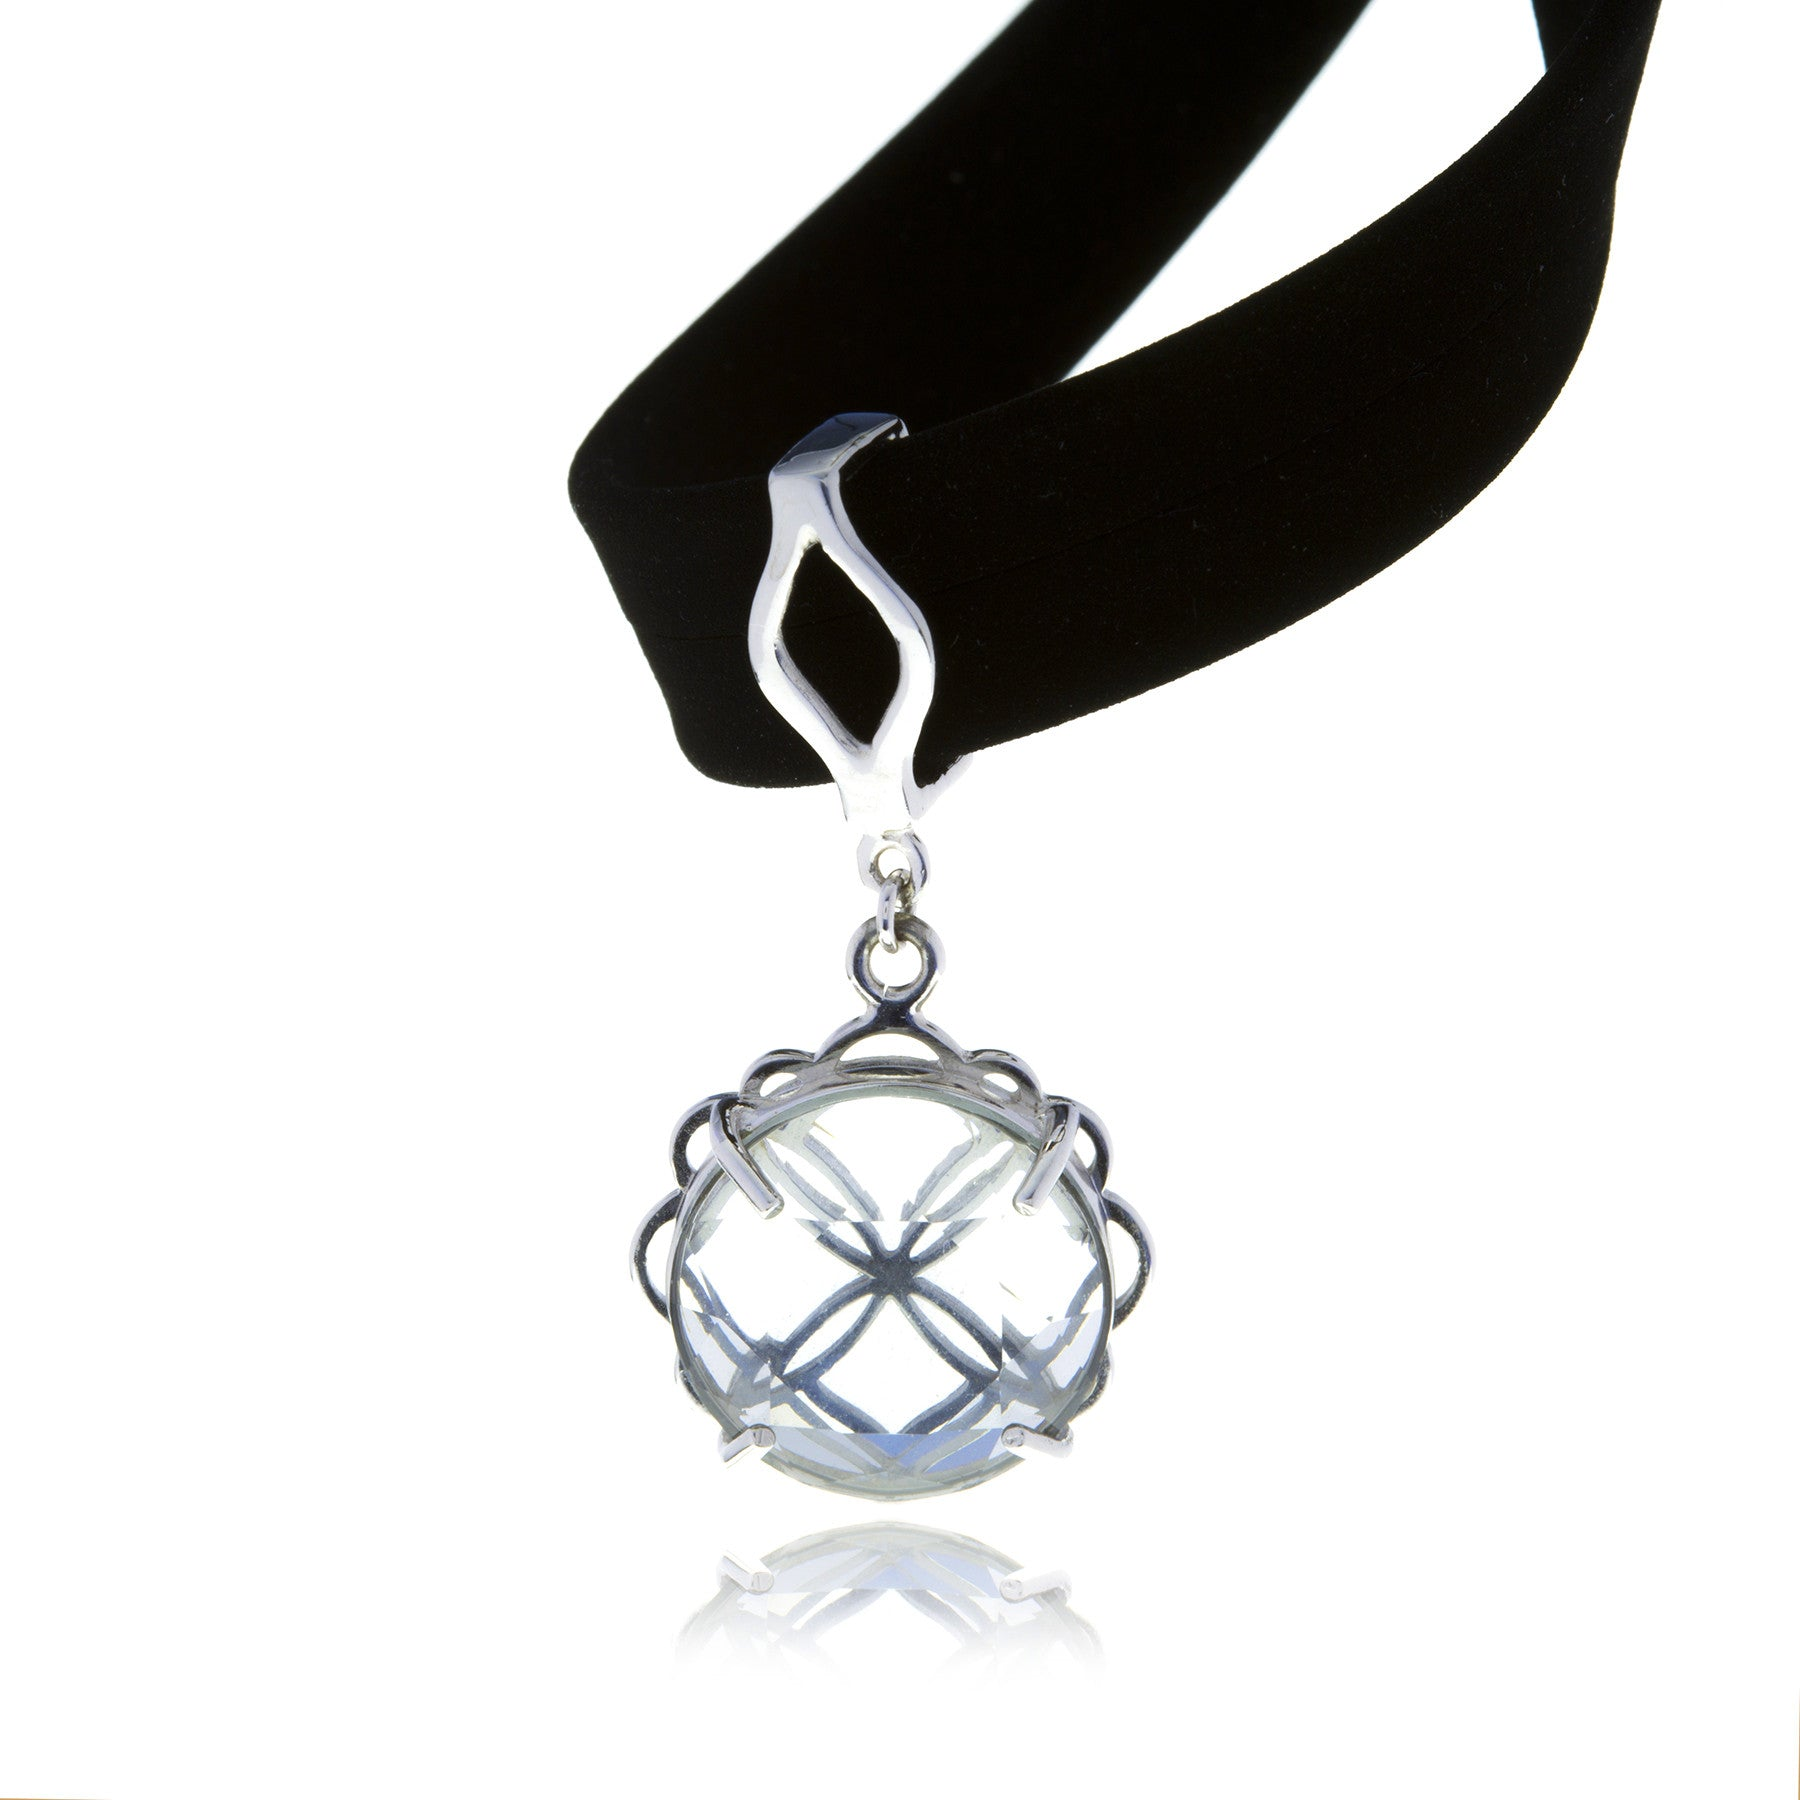 Signature Silver Crystal Flower Charm with Choker - MCK Brands